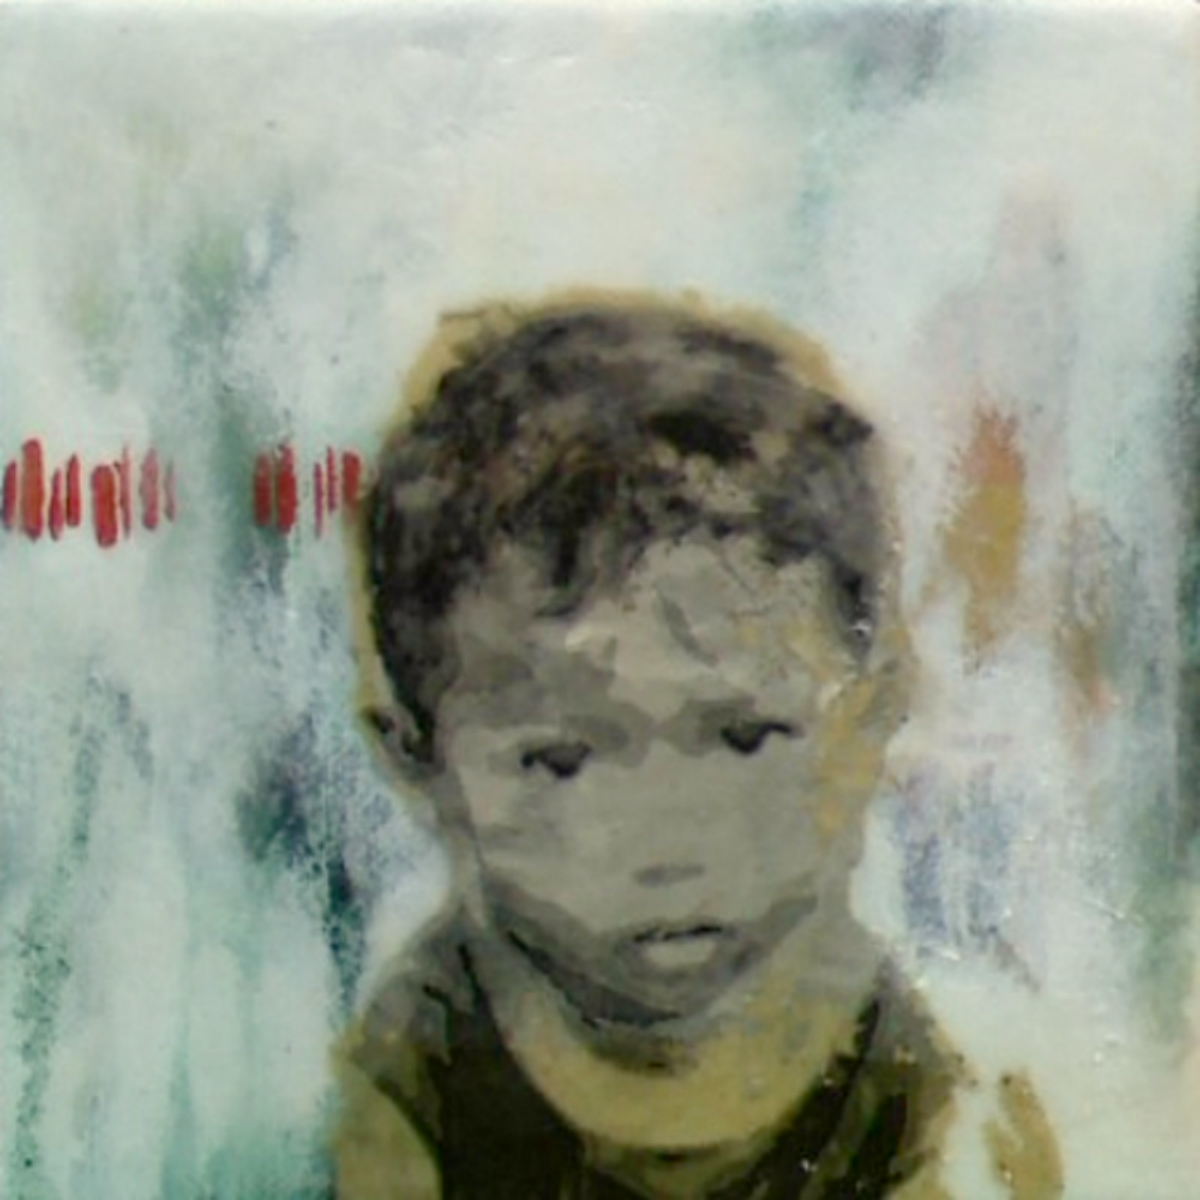 "Our Very Own (2nd Child)  , 2011, Mixed media on canvas, 6 x 6"", Collection of Christopher Hest, New York, NY"